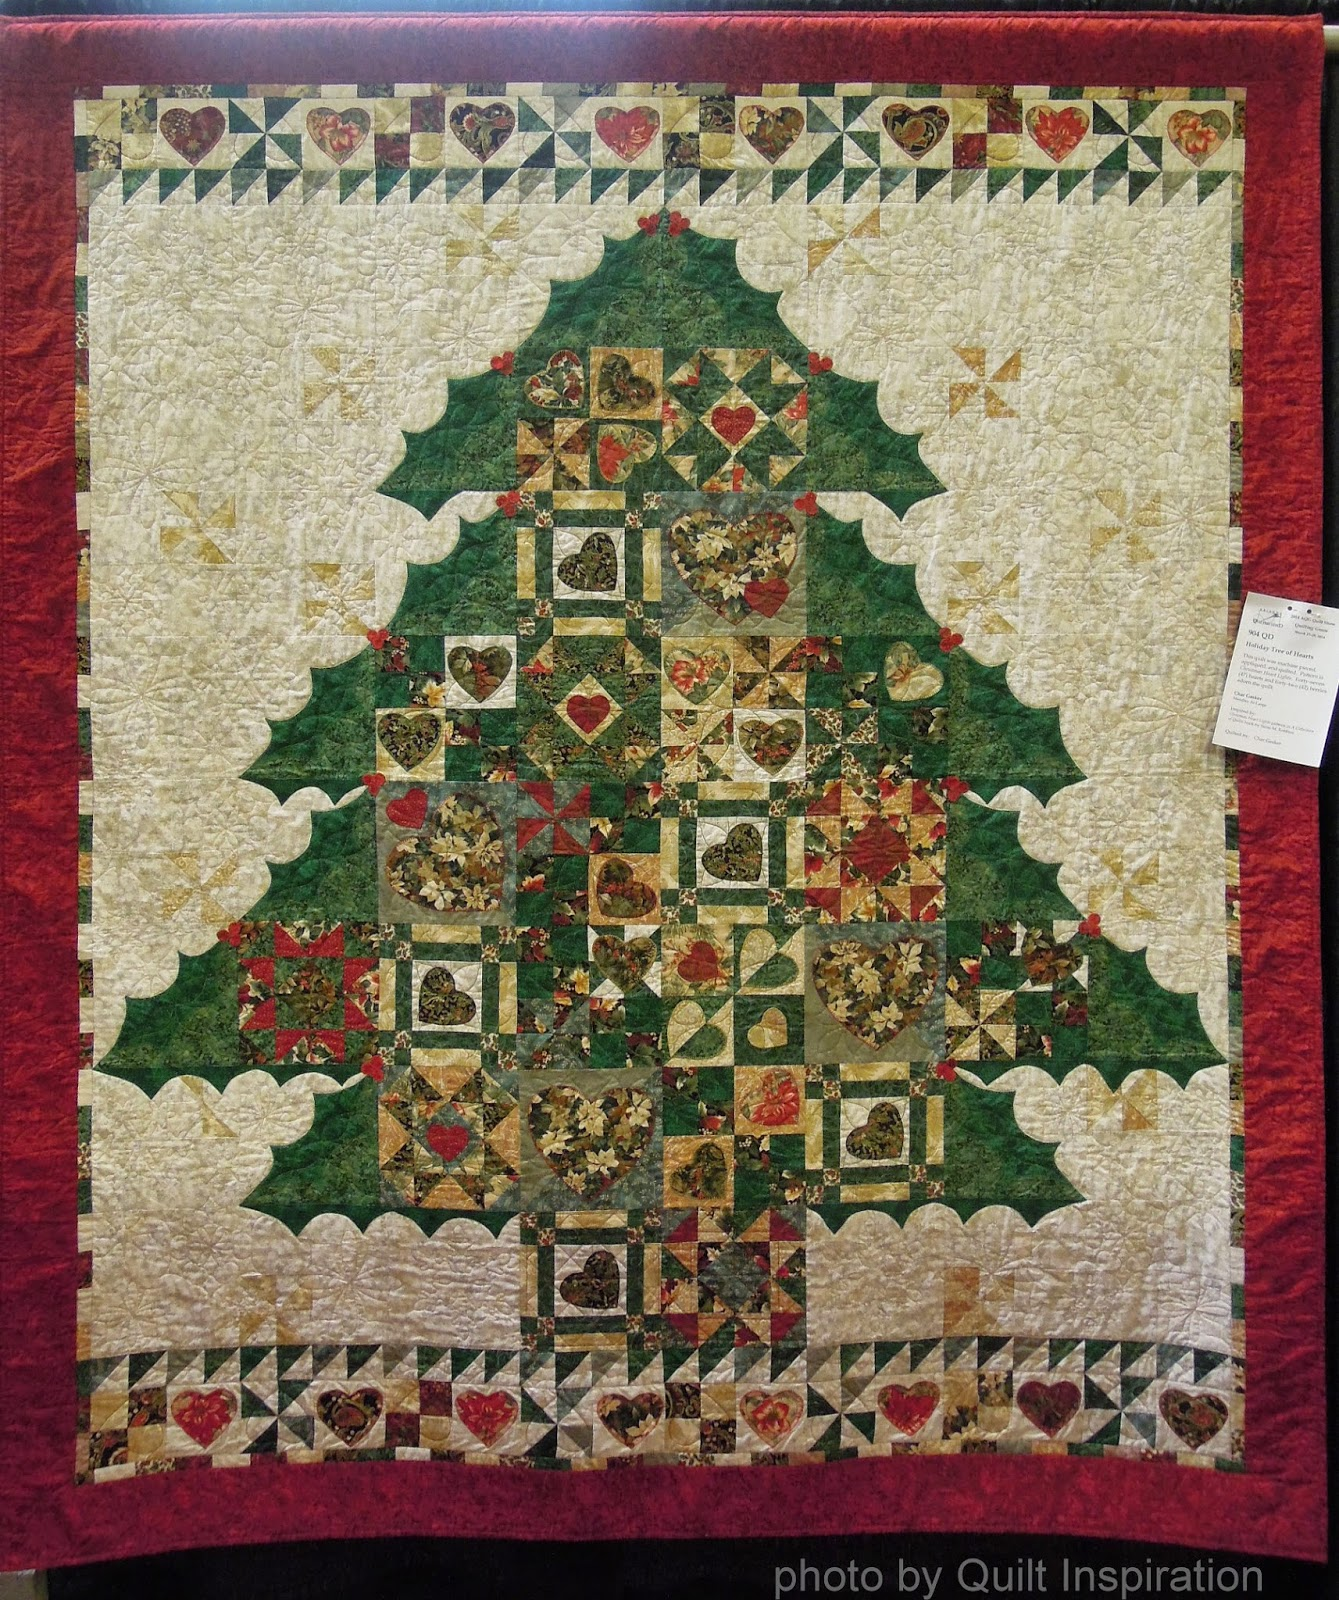 Lighting Of Christmas Tree 2014: Quilt Inspiration: Happy (quilted) Holidays! The Best Of